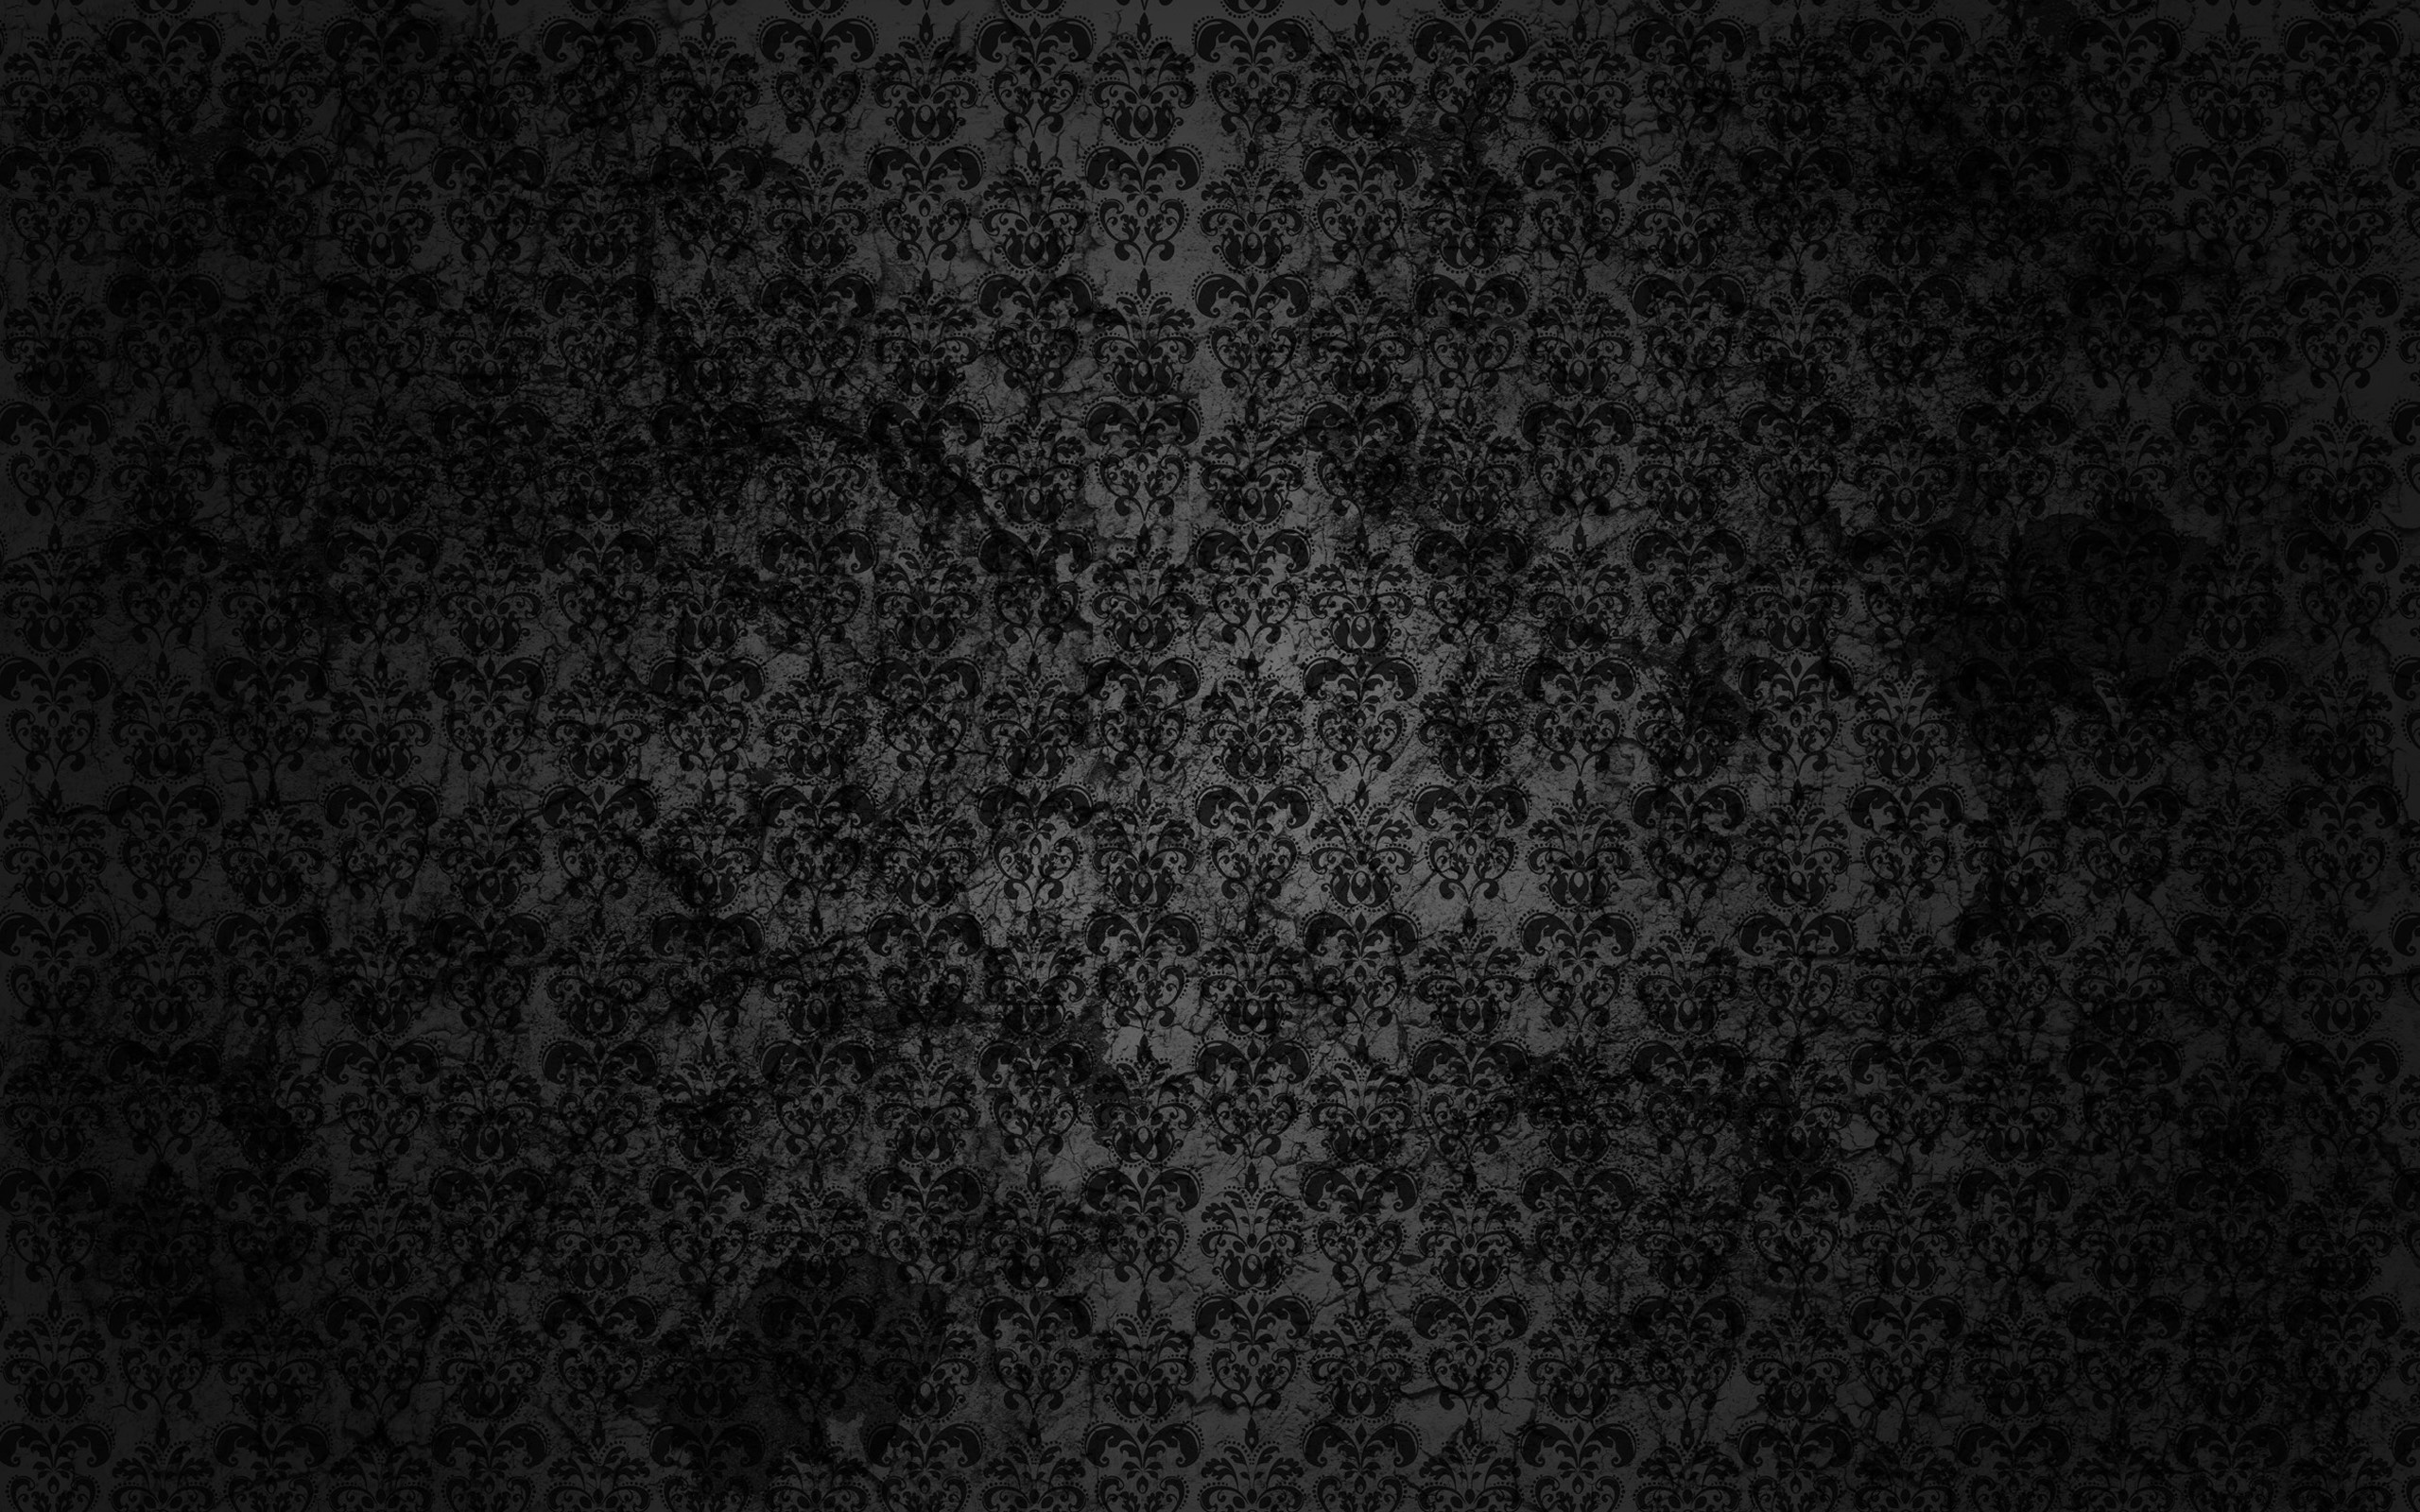 Darkness Background (68+ images)